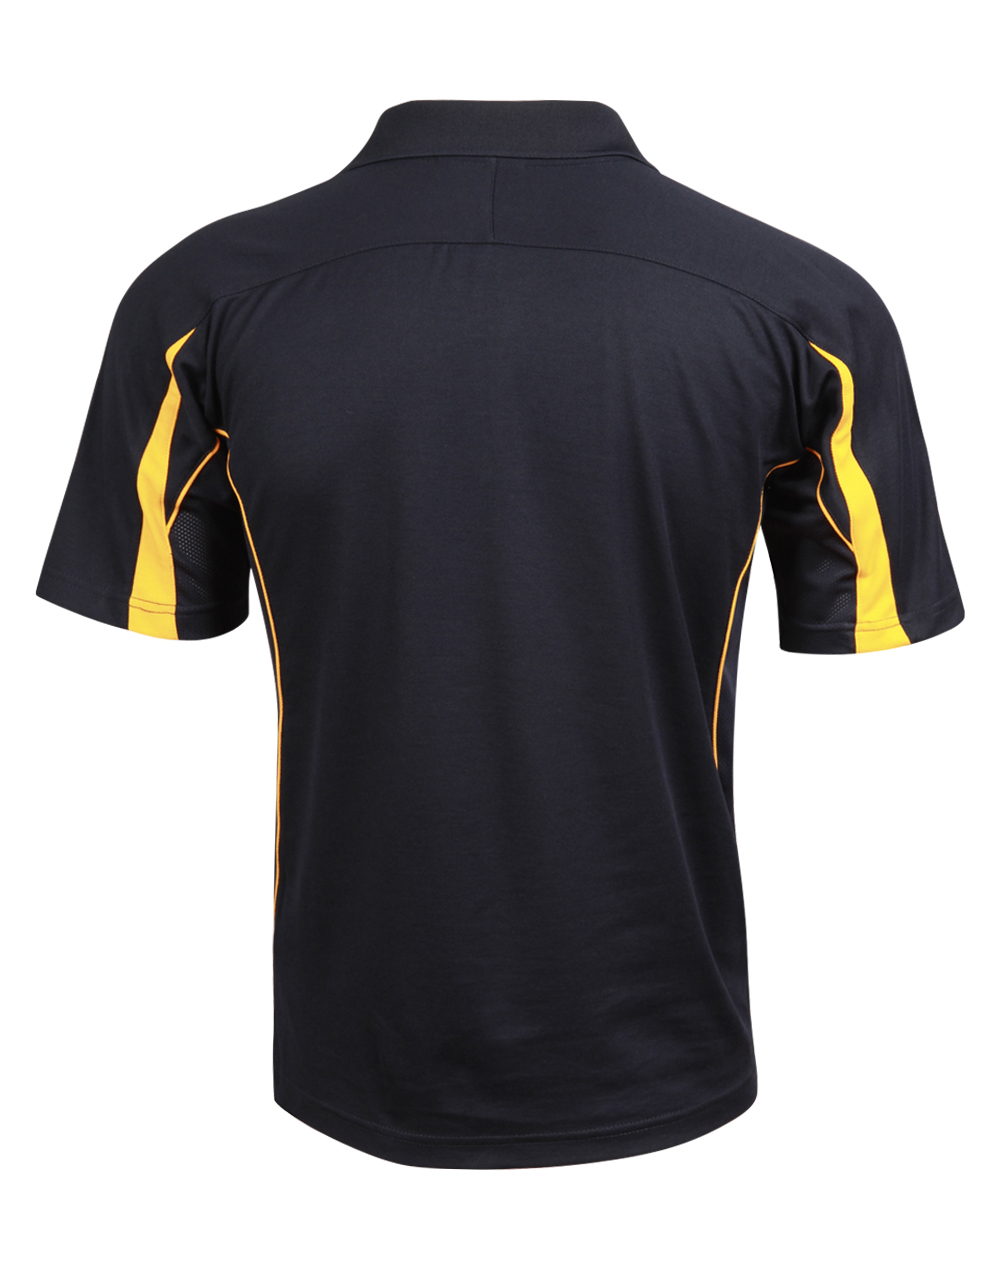 https://s3-ap-southeast-1.amazonaws.com/ws-imgs/POLOSHIRTS/PS53_NavyGold_back.jpg